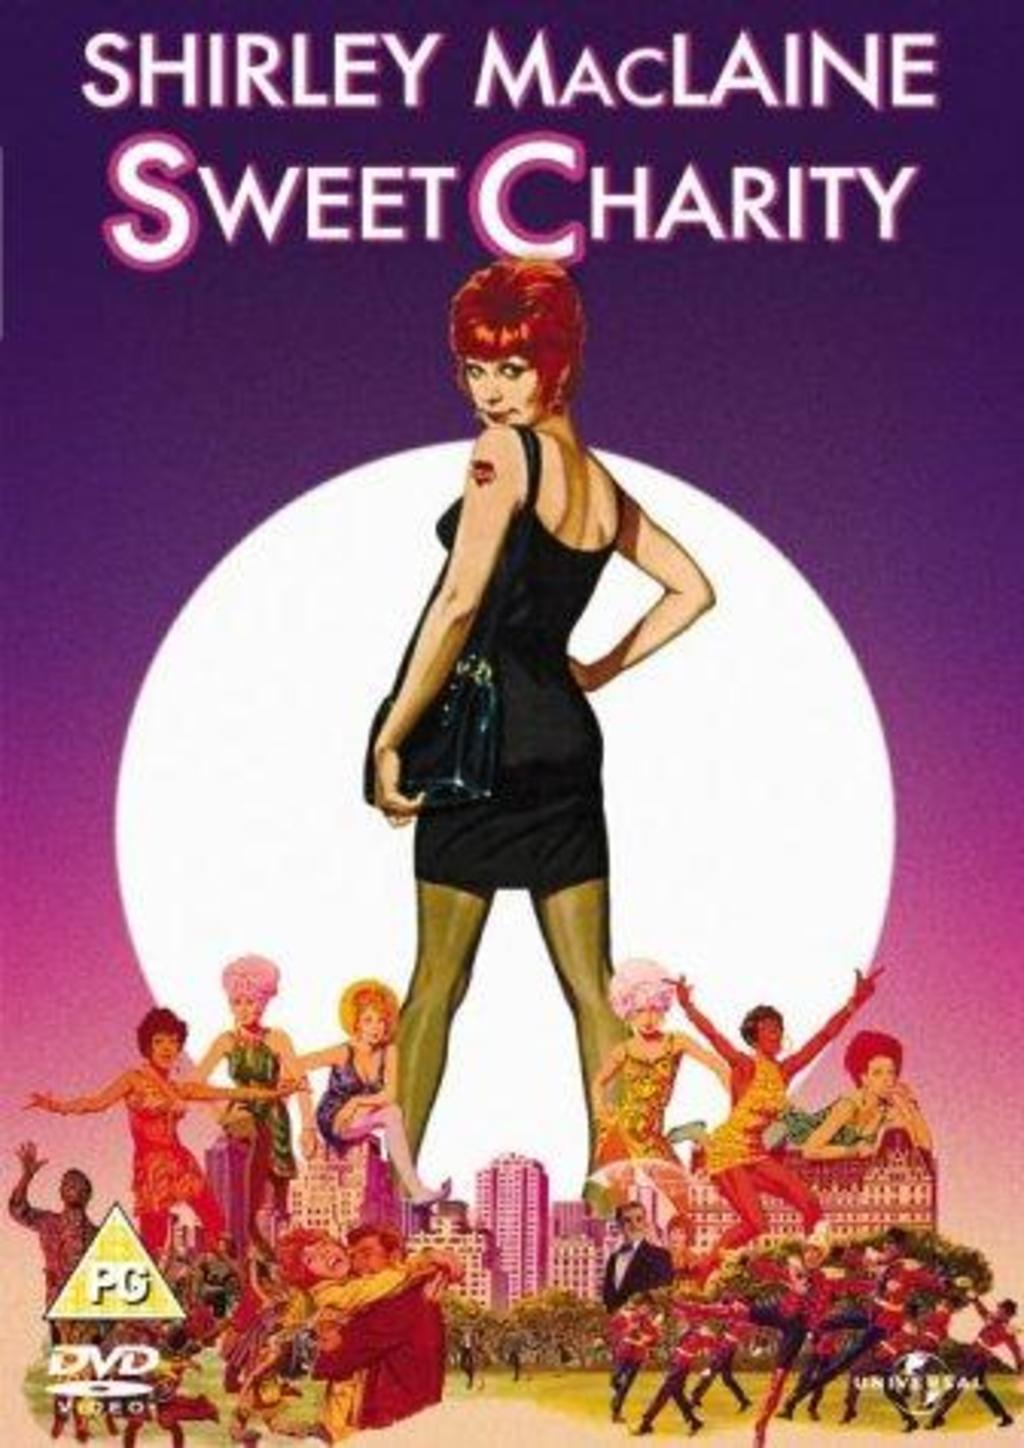 Sweet Charity starring Shirley MacLaine promo art